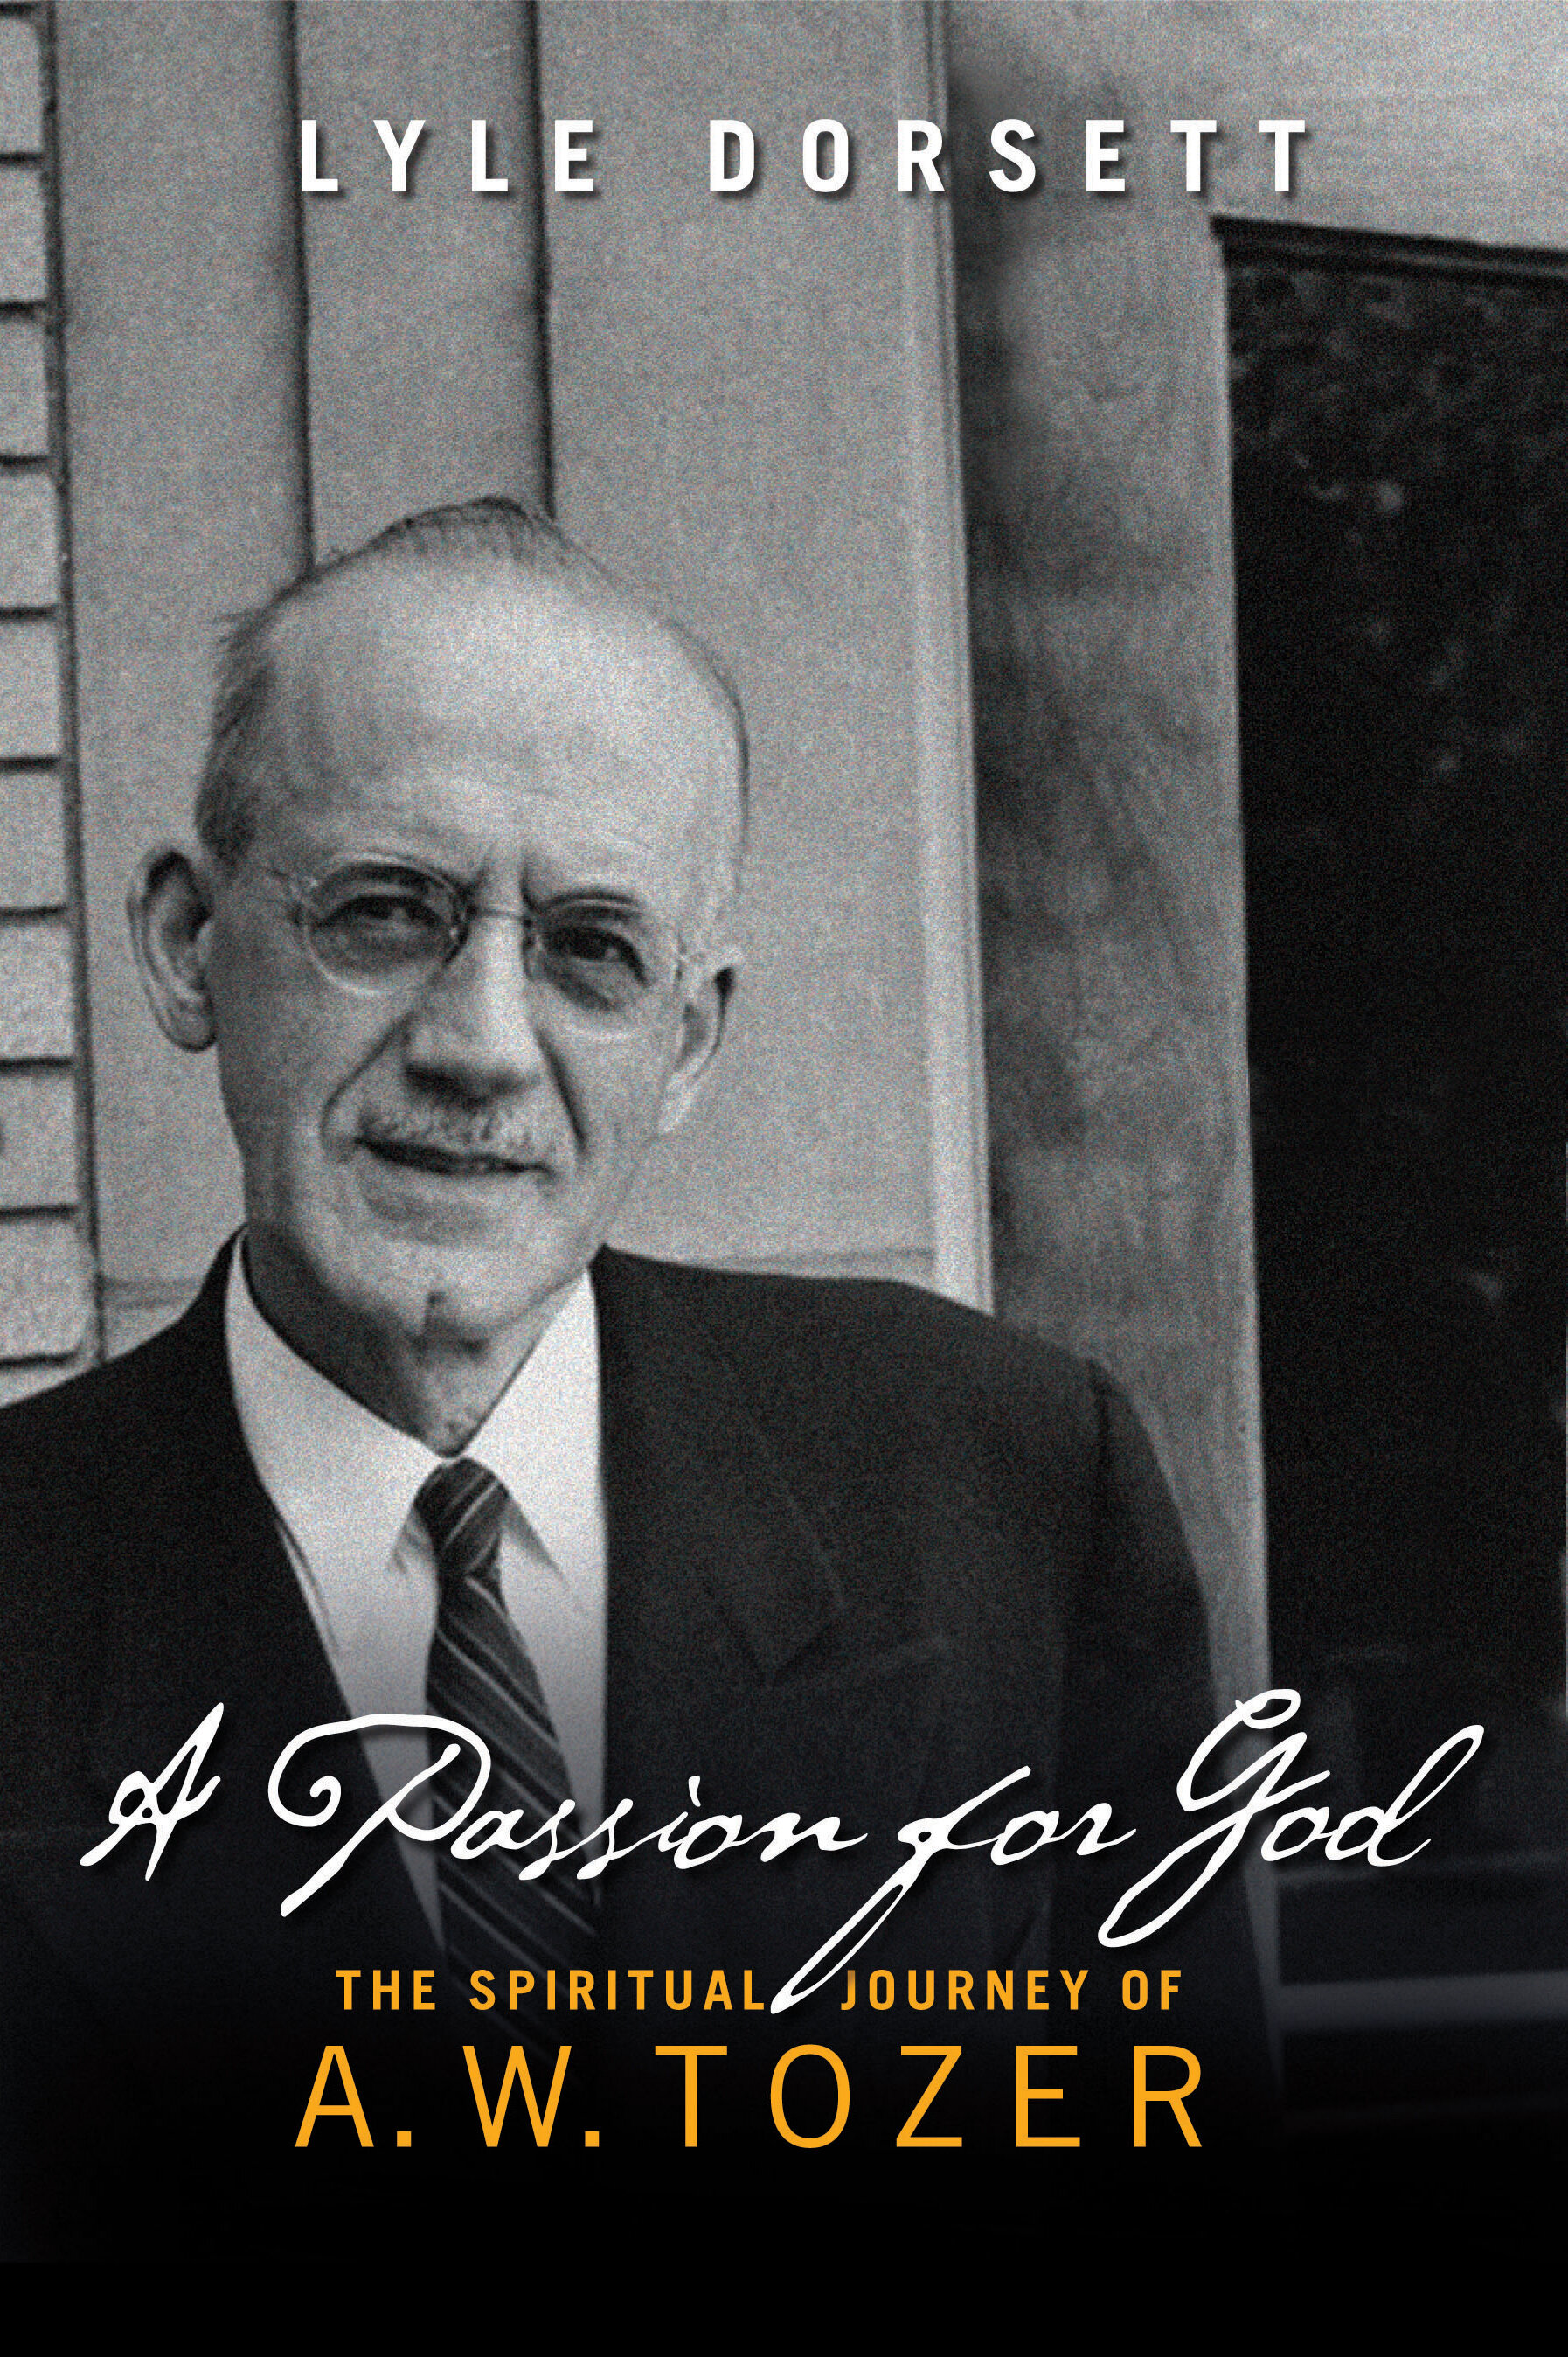 A Passion for God: The Spiritual Journey of A. W. Tozer